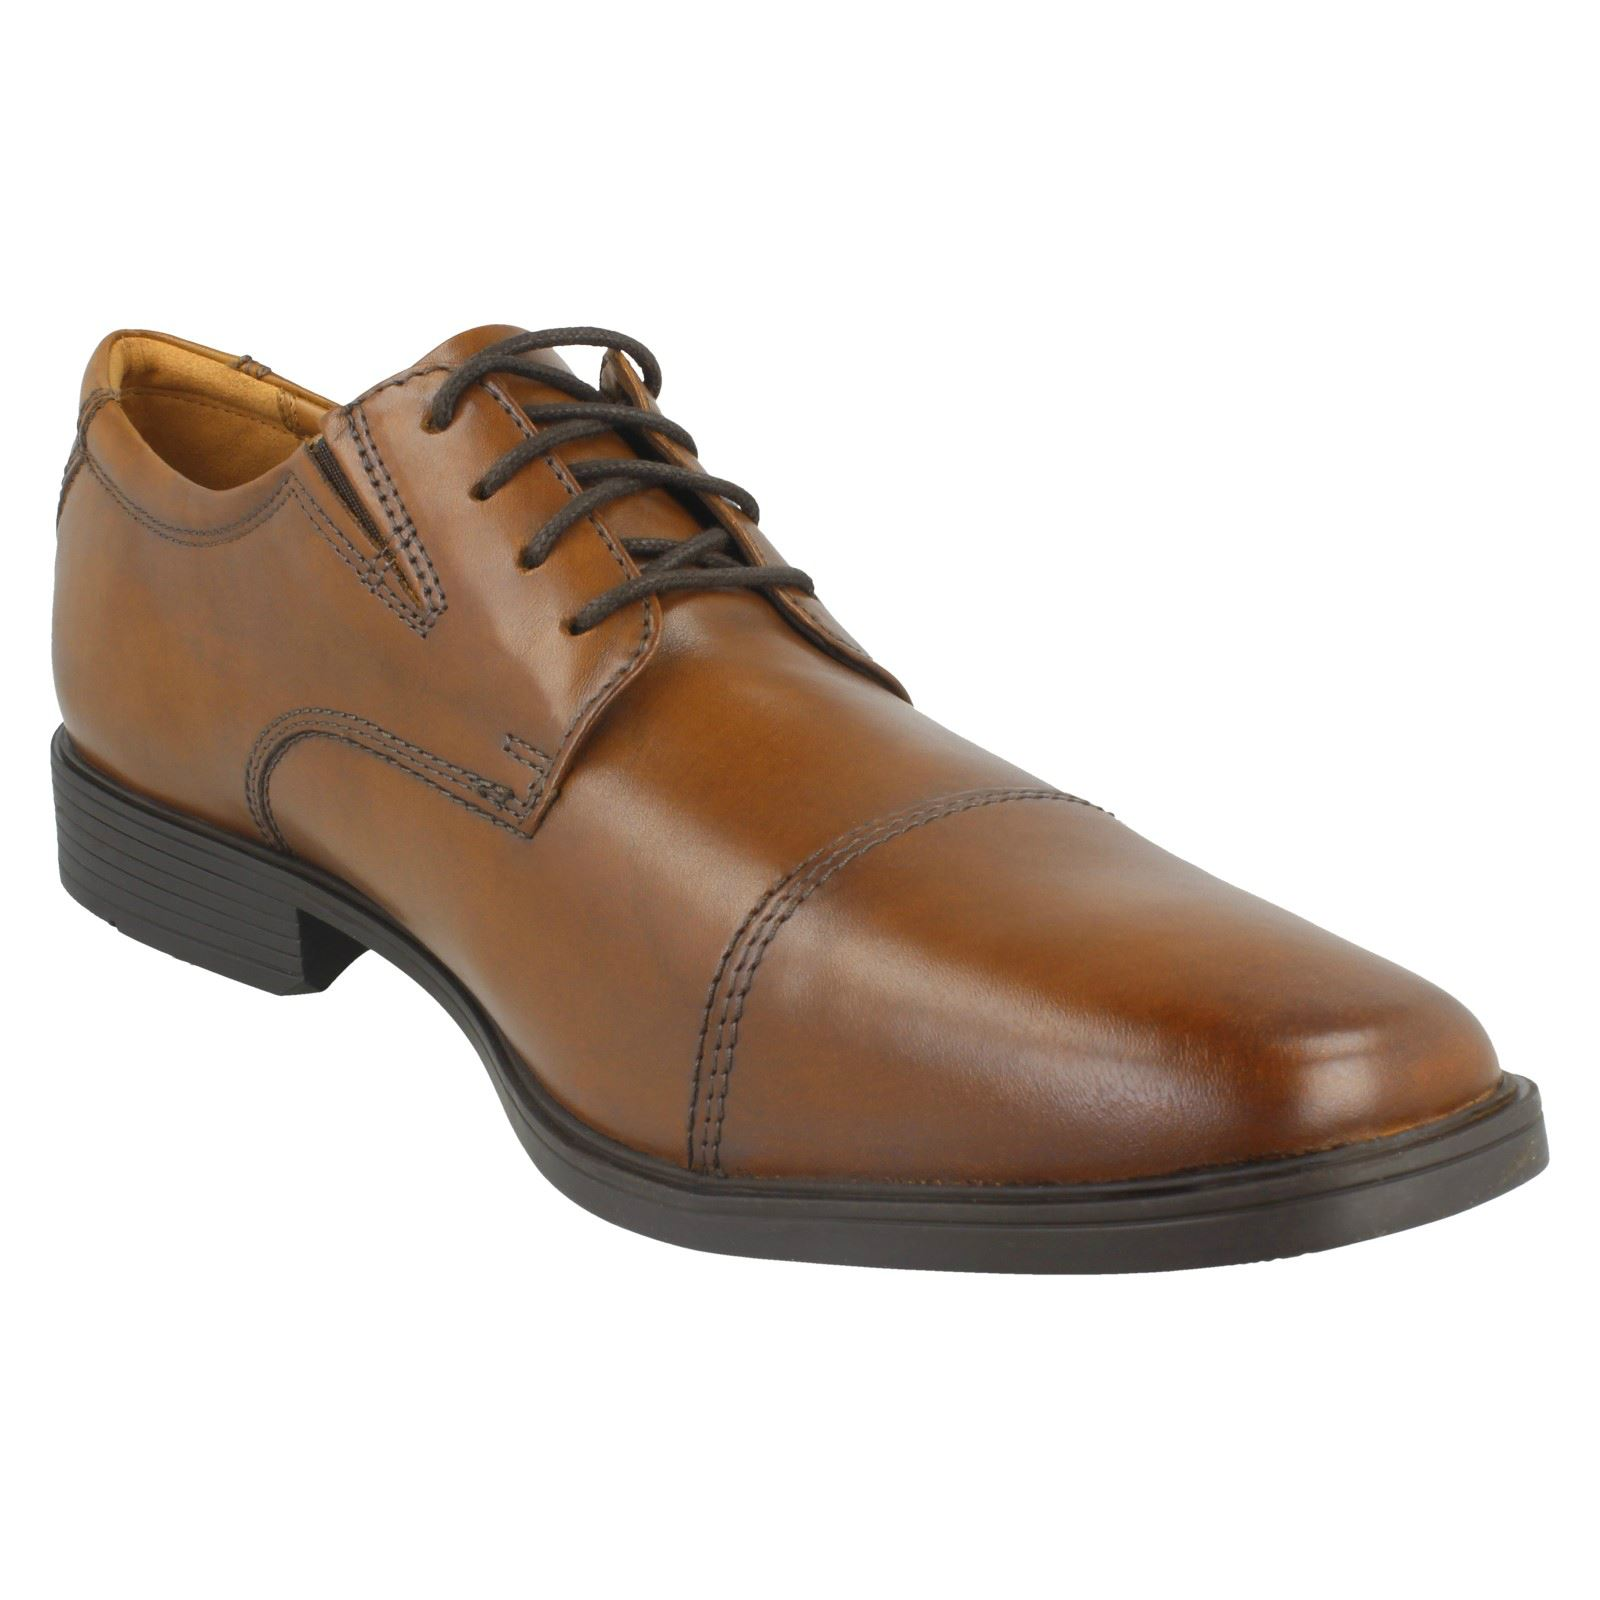 Mens-Clarks-Formal-Lace-Up-Shoes-Tilden-Cap thumbnail 21